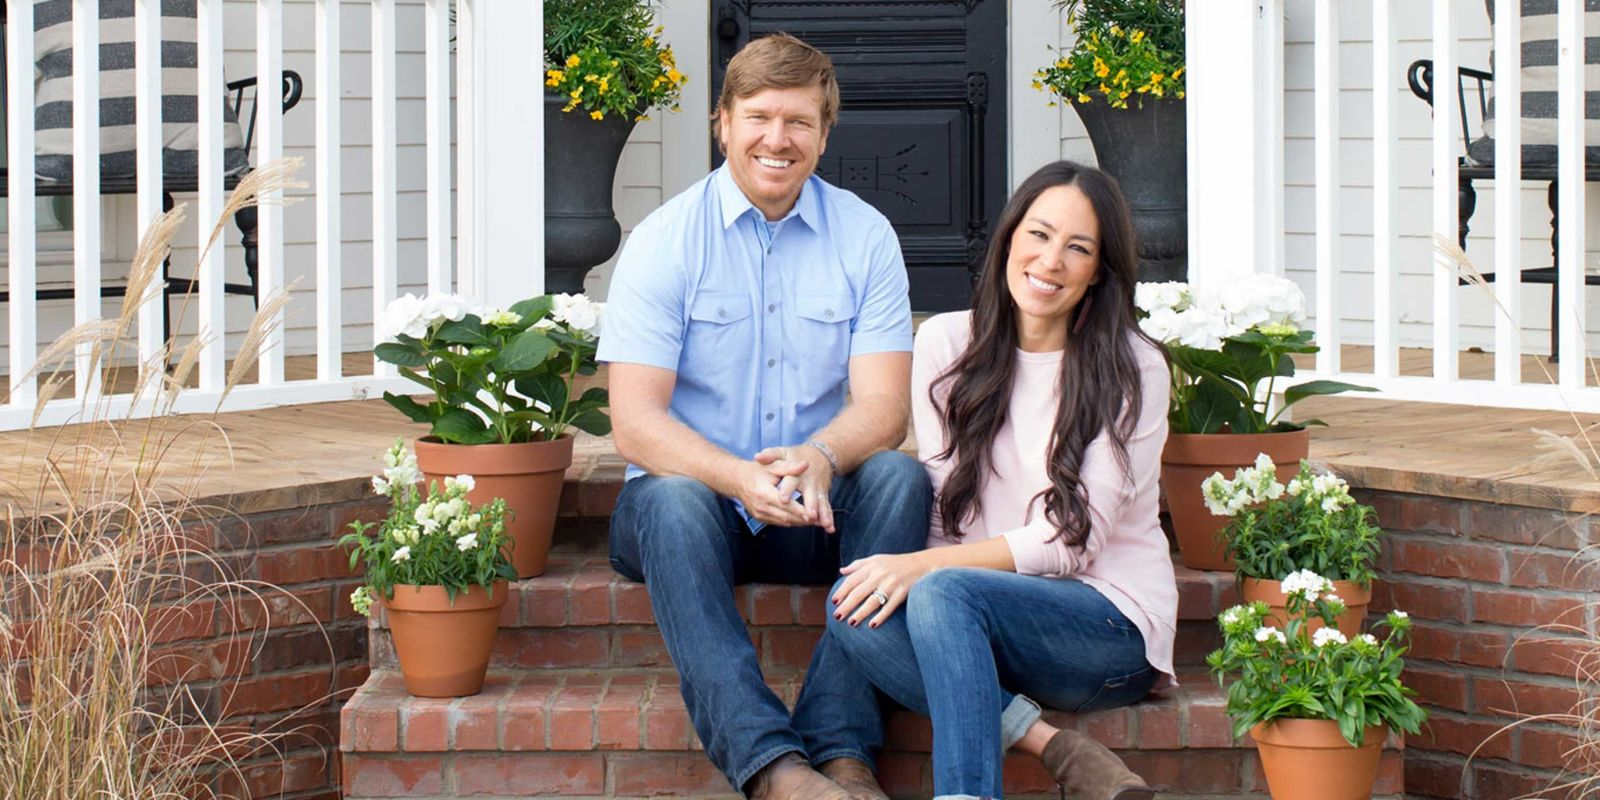 Why Chip and Joanna Gaines Are the Most Admirable Couple on TV